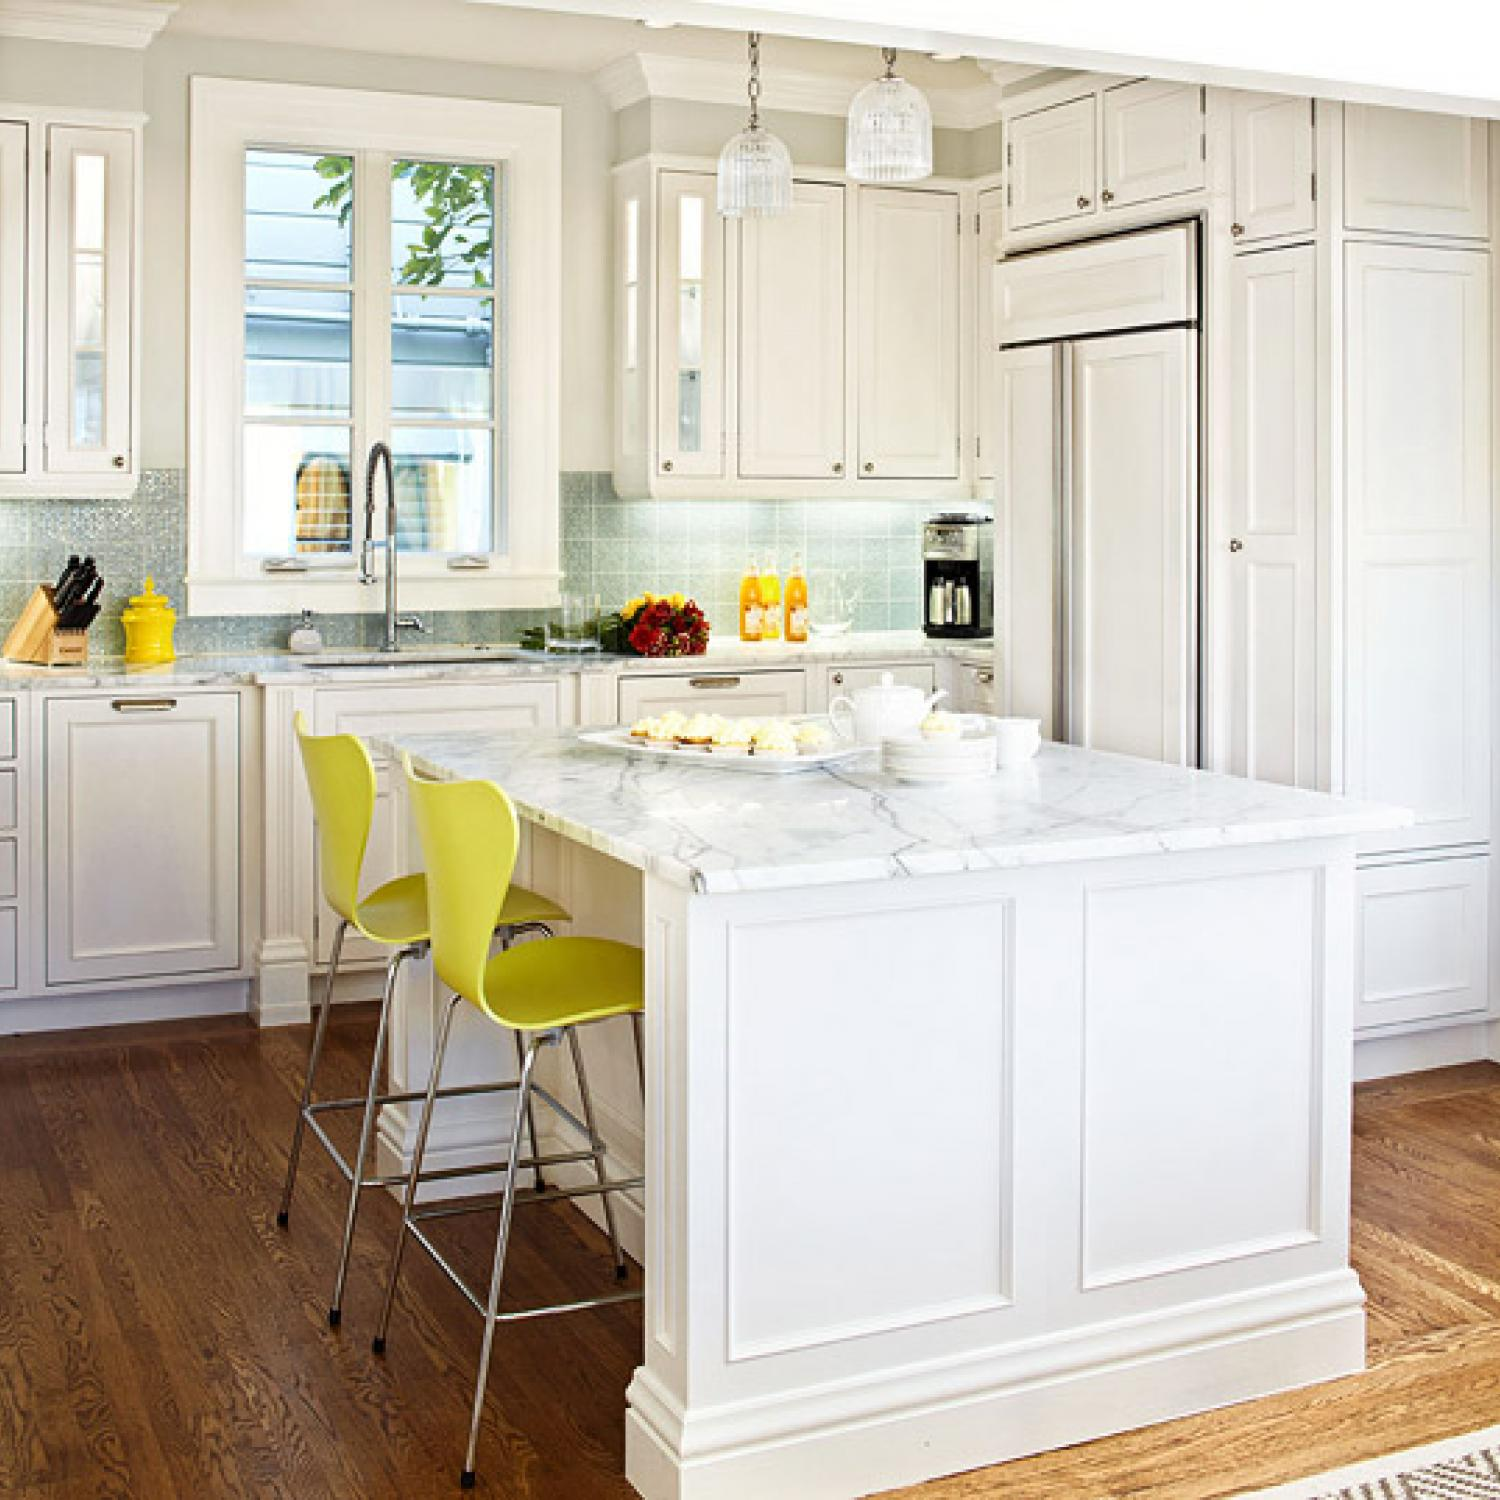 Design ideas for white kitchens traditional home for Traditional kitchen cabinet ideas